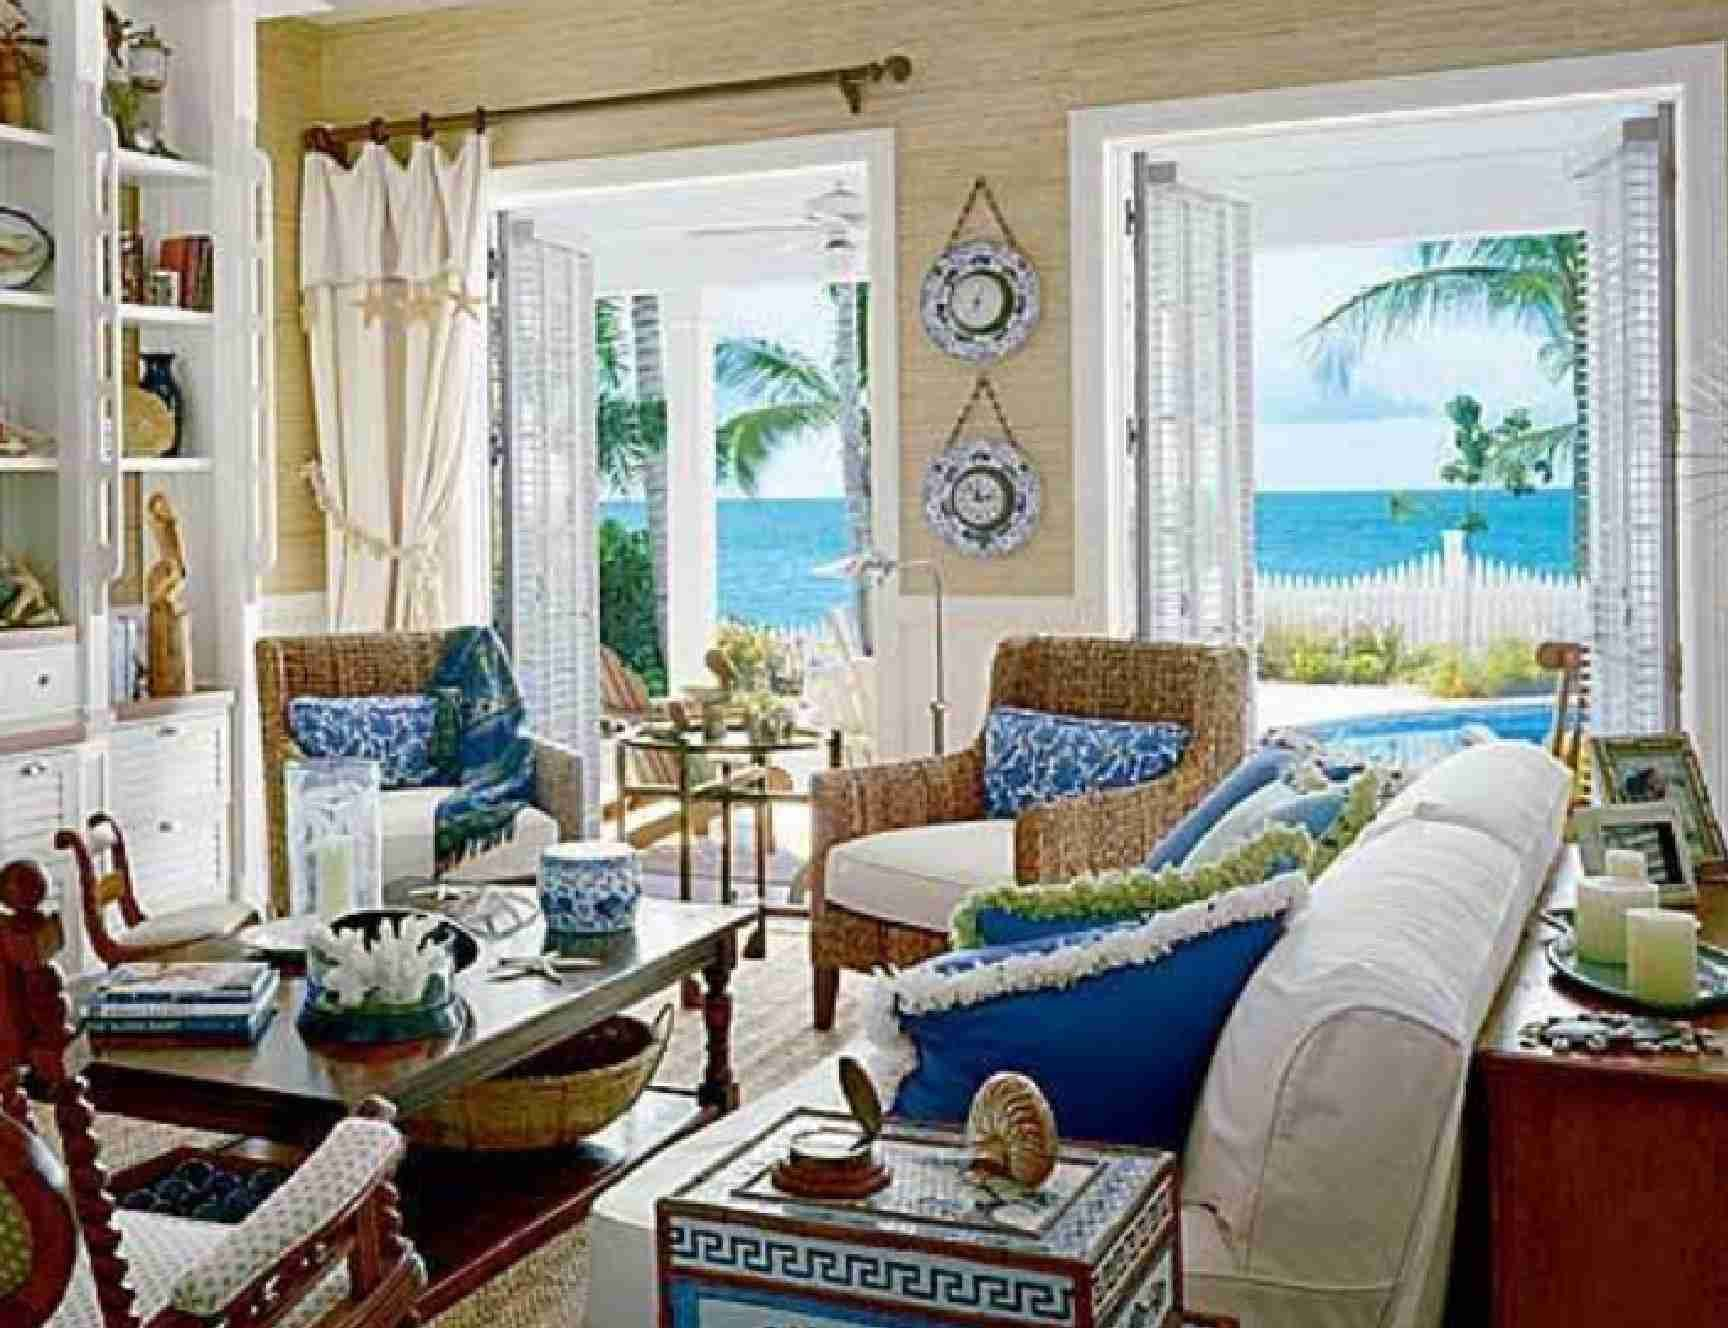 Beach Themed Living Room Design Endearing Google Image Result For Httpwwwhomeinnenwpcontent Inspiration